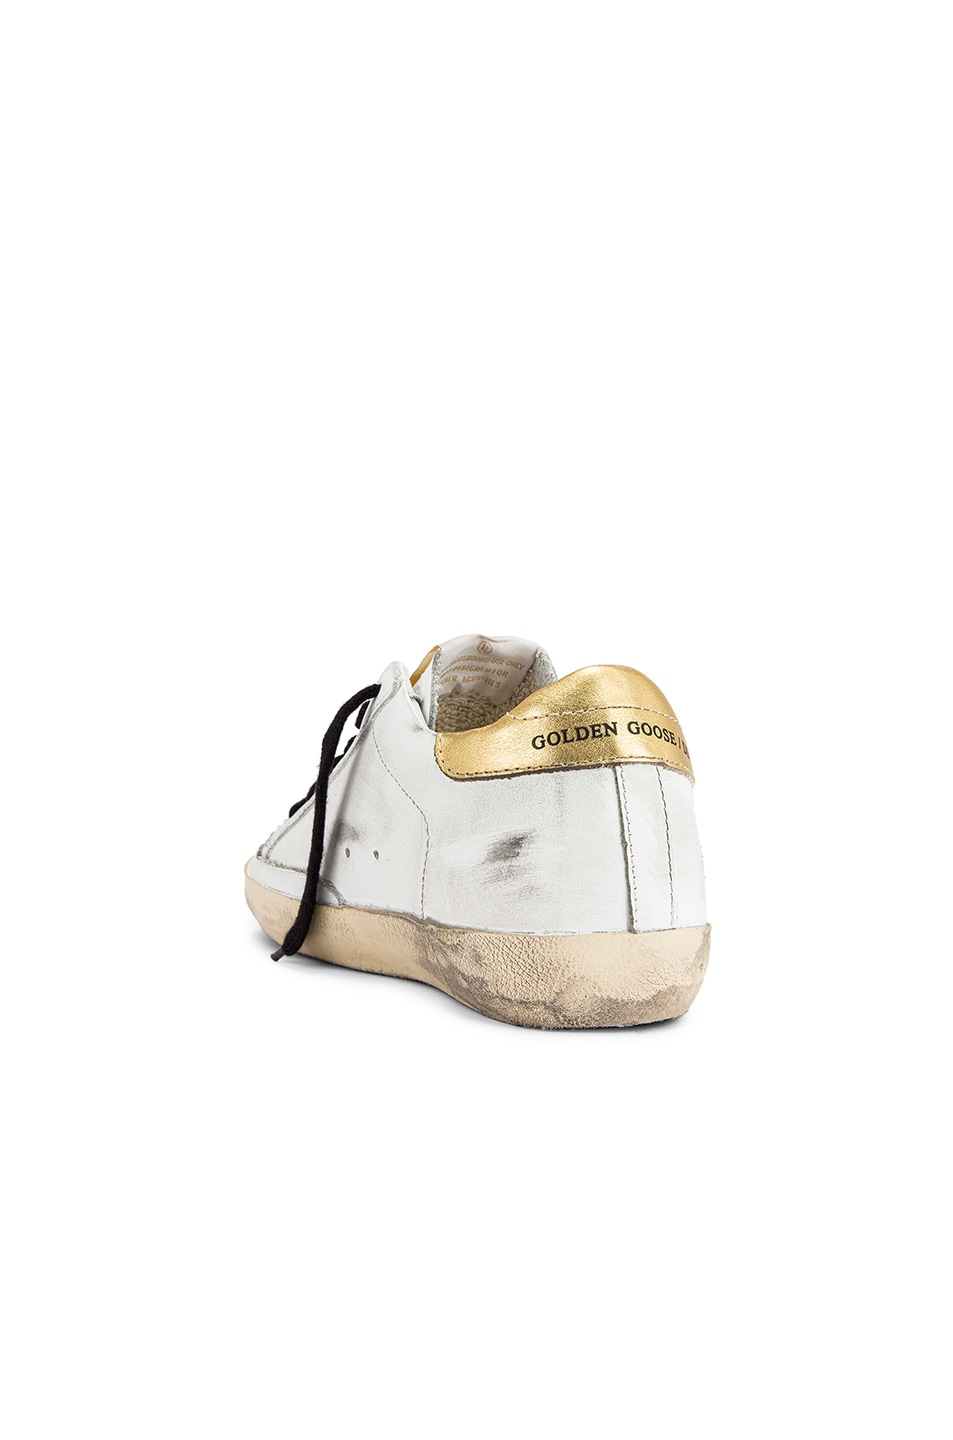 Image 3 of Golden Goose Superstar Sneaker in White Leather & Gold Leopard